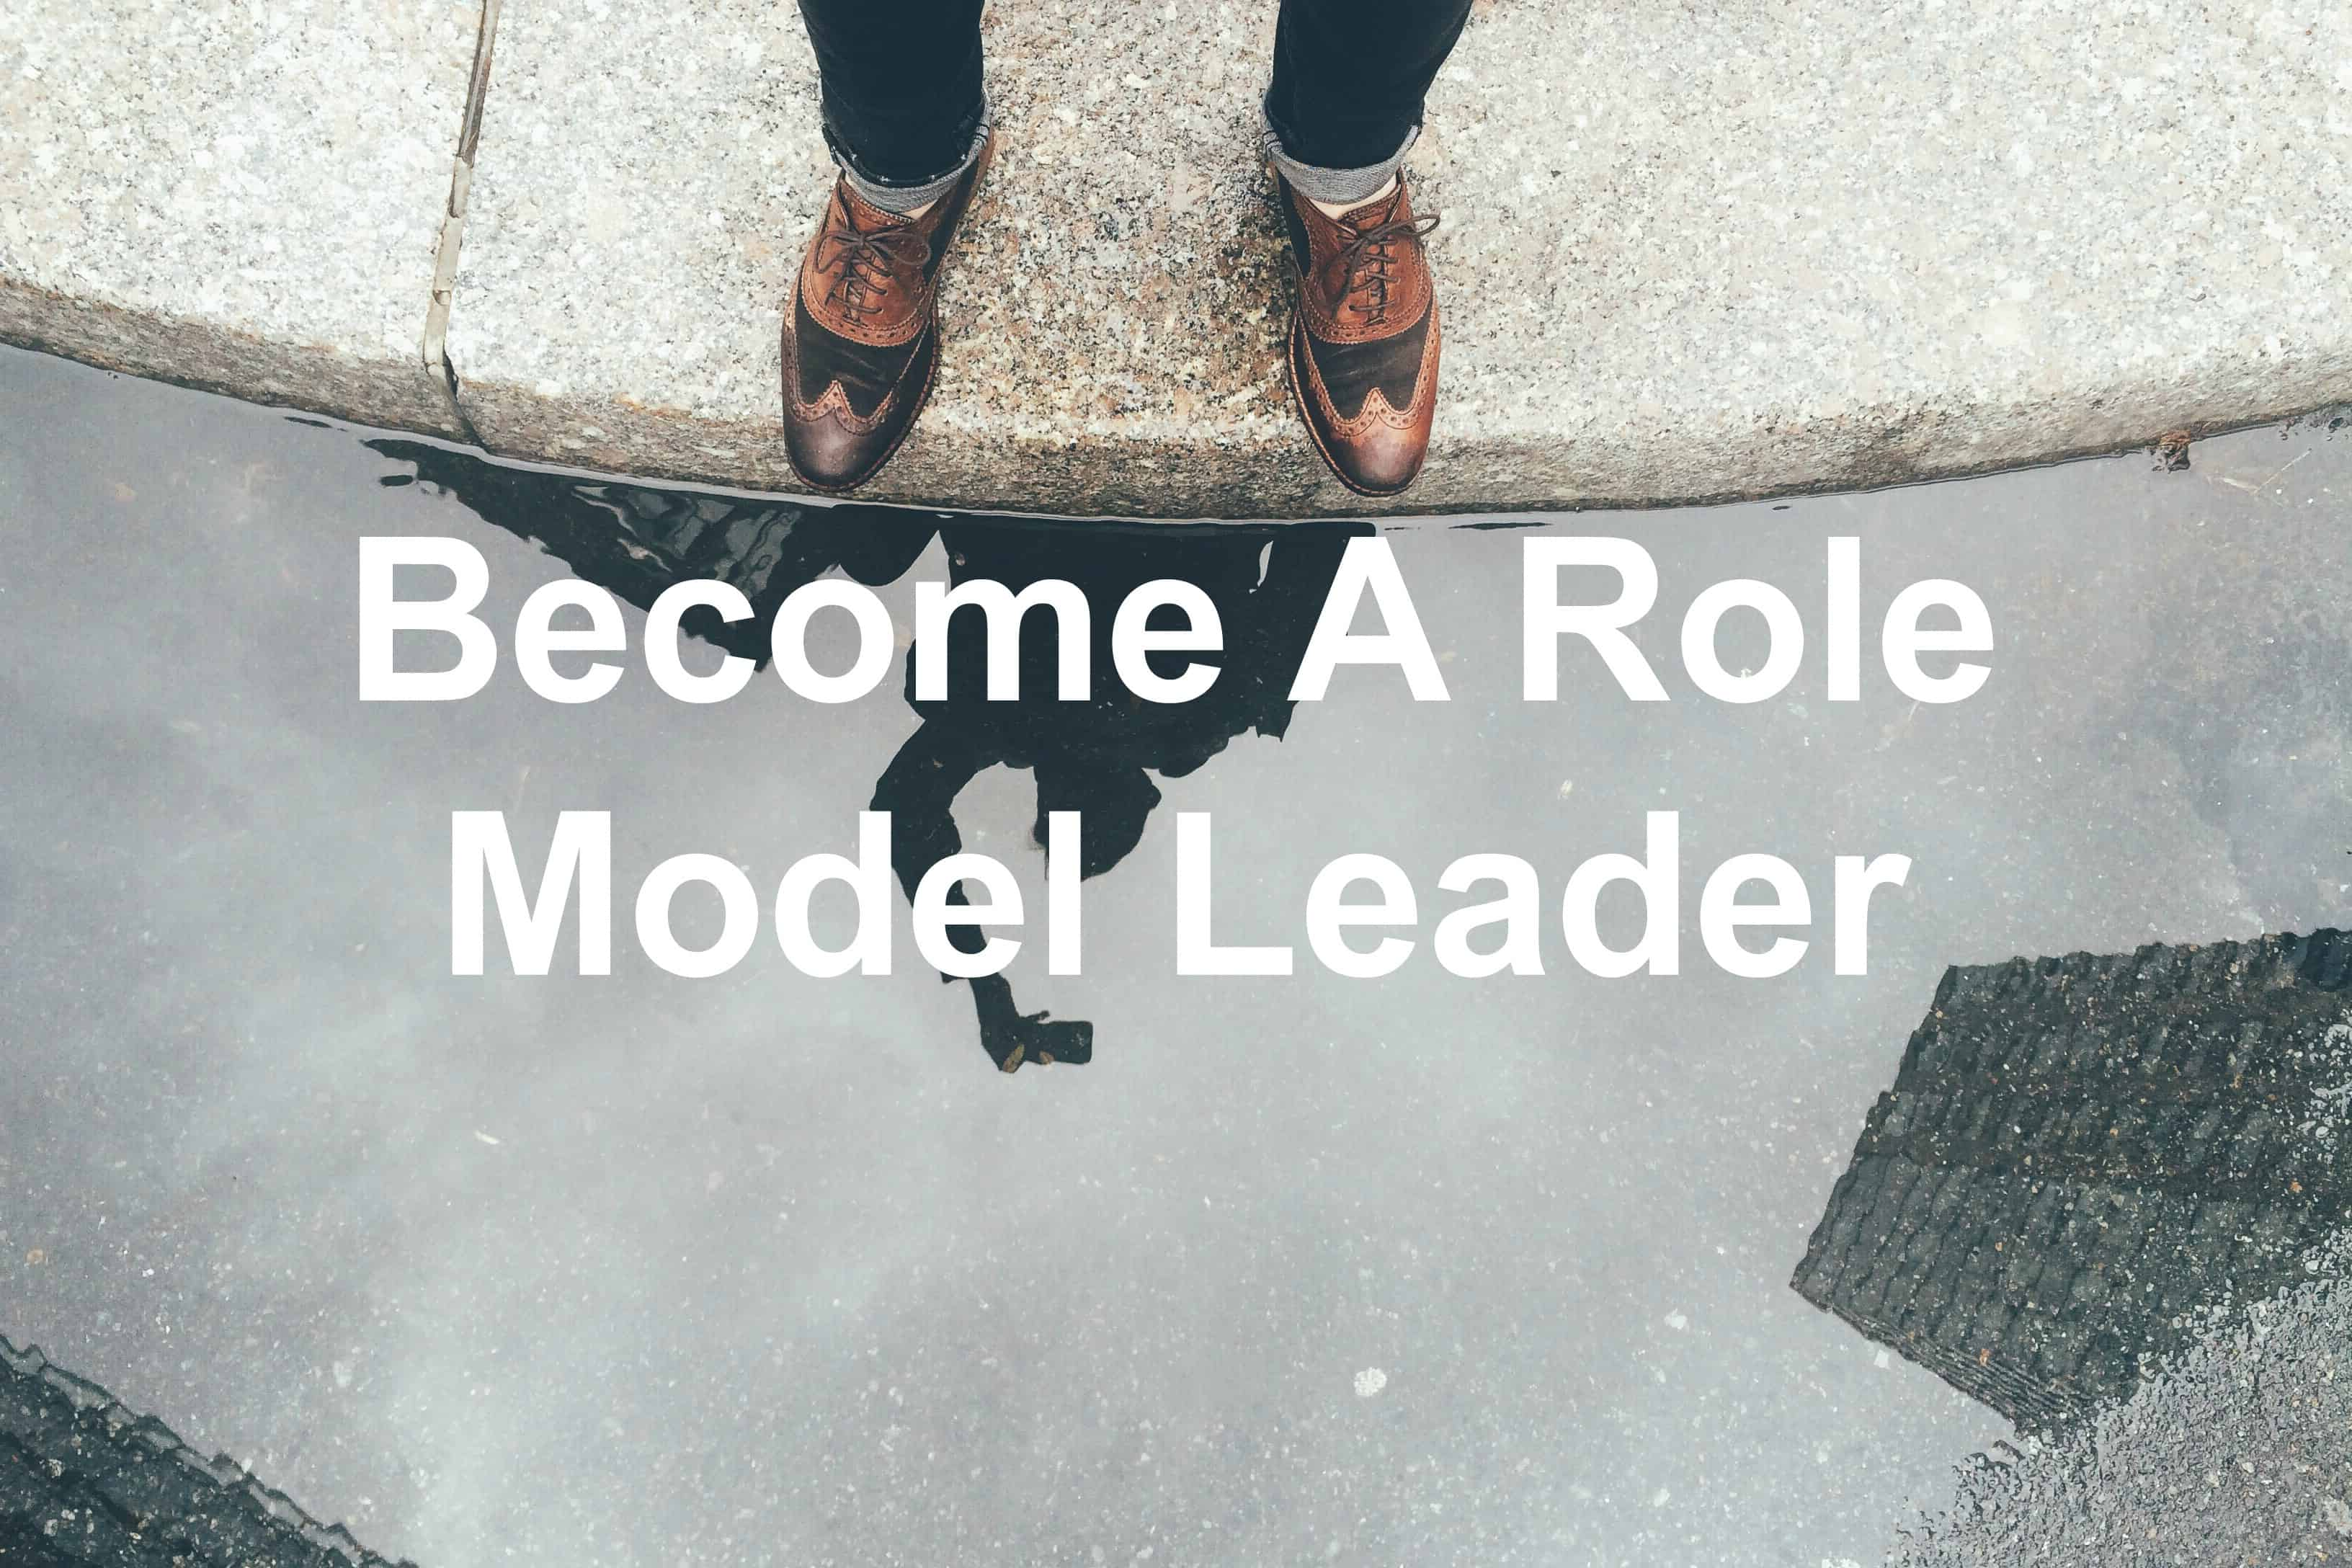 All leaders need a role model